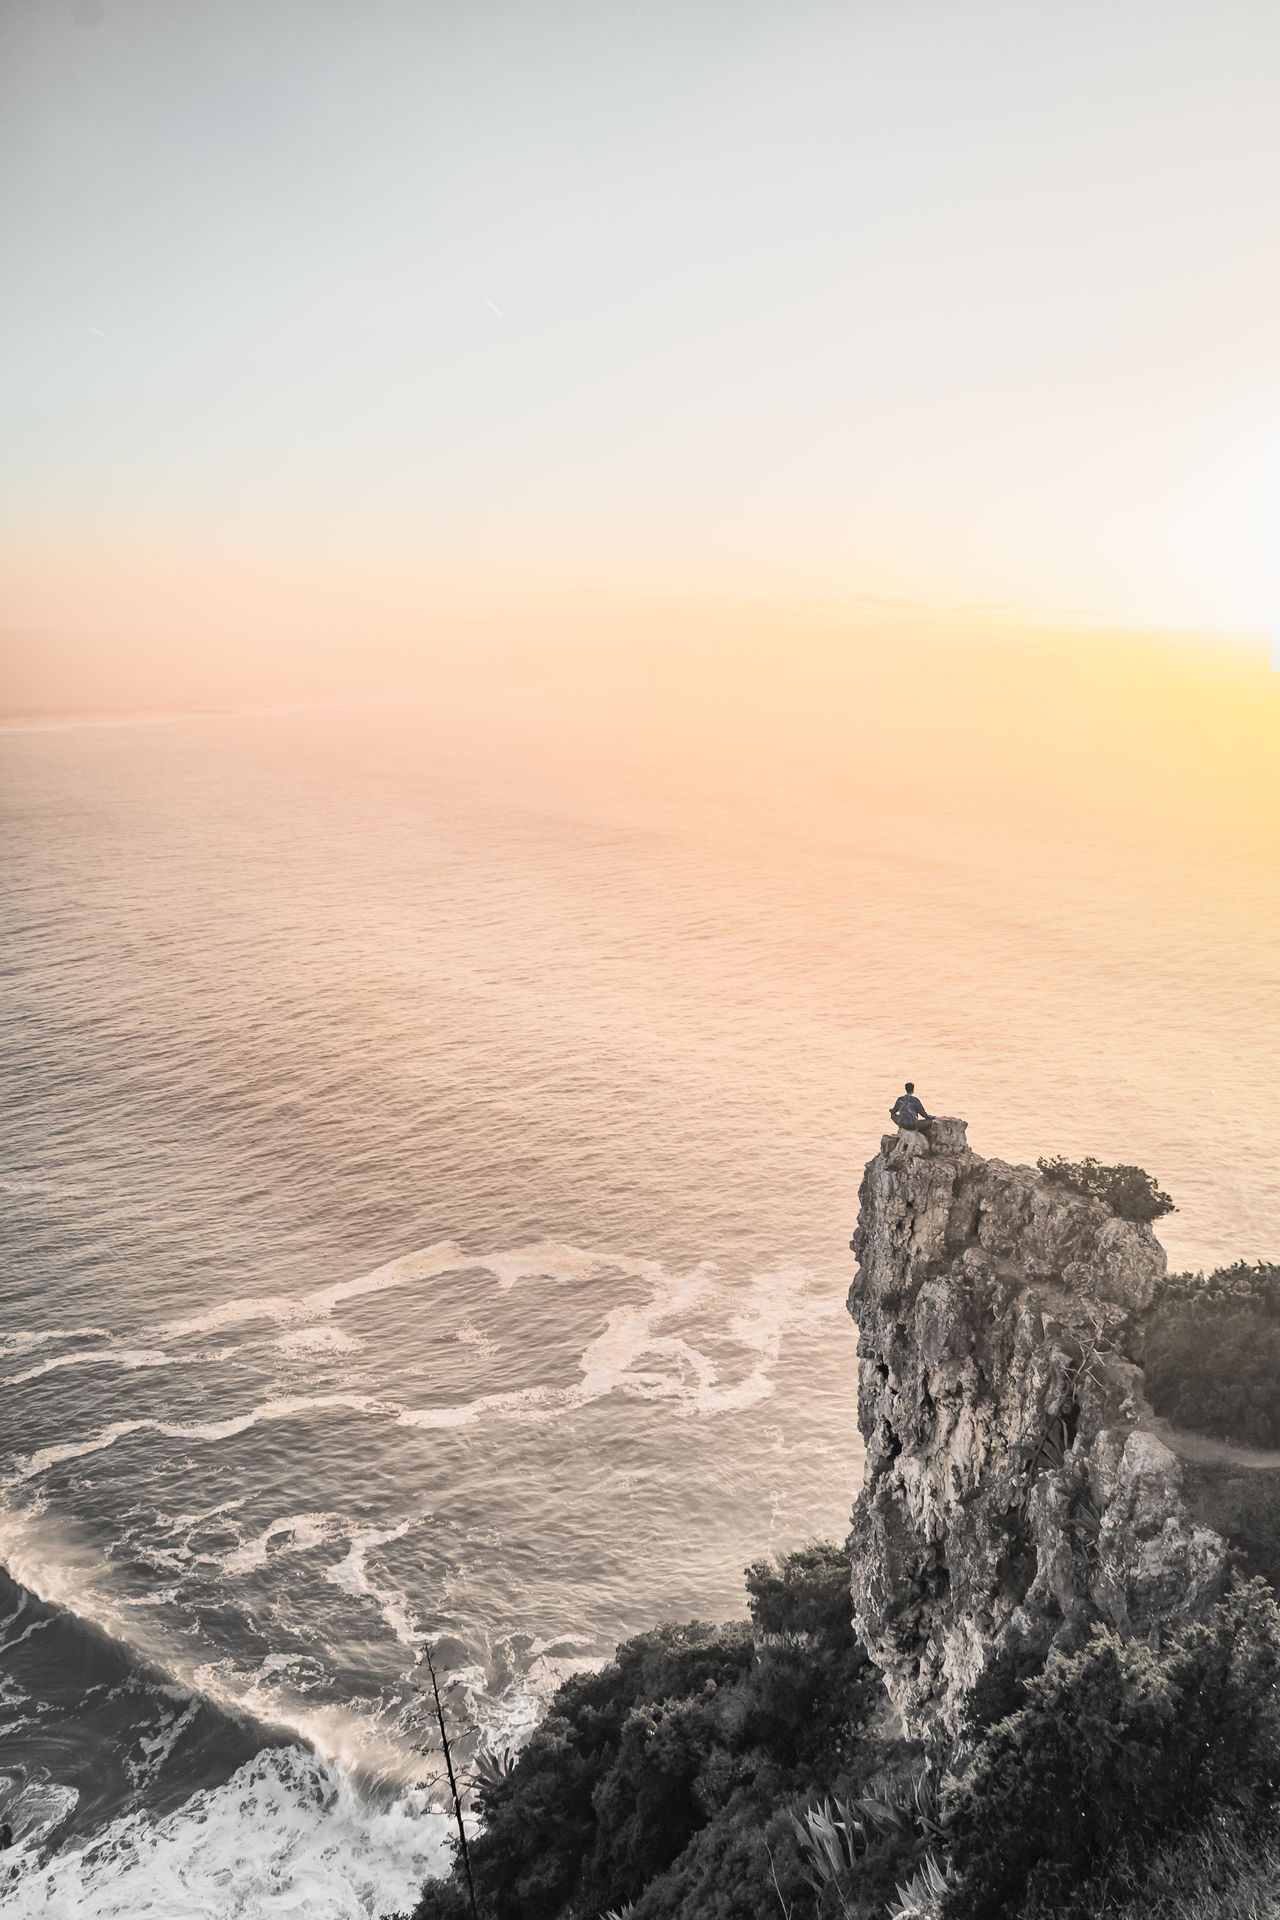 Beauty In Nature Black & White Black And White Blackandwhite Cliff Day Landscape Nature Nature Outdoors Overhang Scenics Sea Sea And Sky Seascape Sky Sunset Sunset #sun #clouds #skylovers #sky #nature #beautifulinnature #naturalbeauty #photography #landscape Sunset_collection View From Above Waves